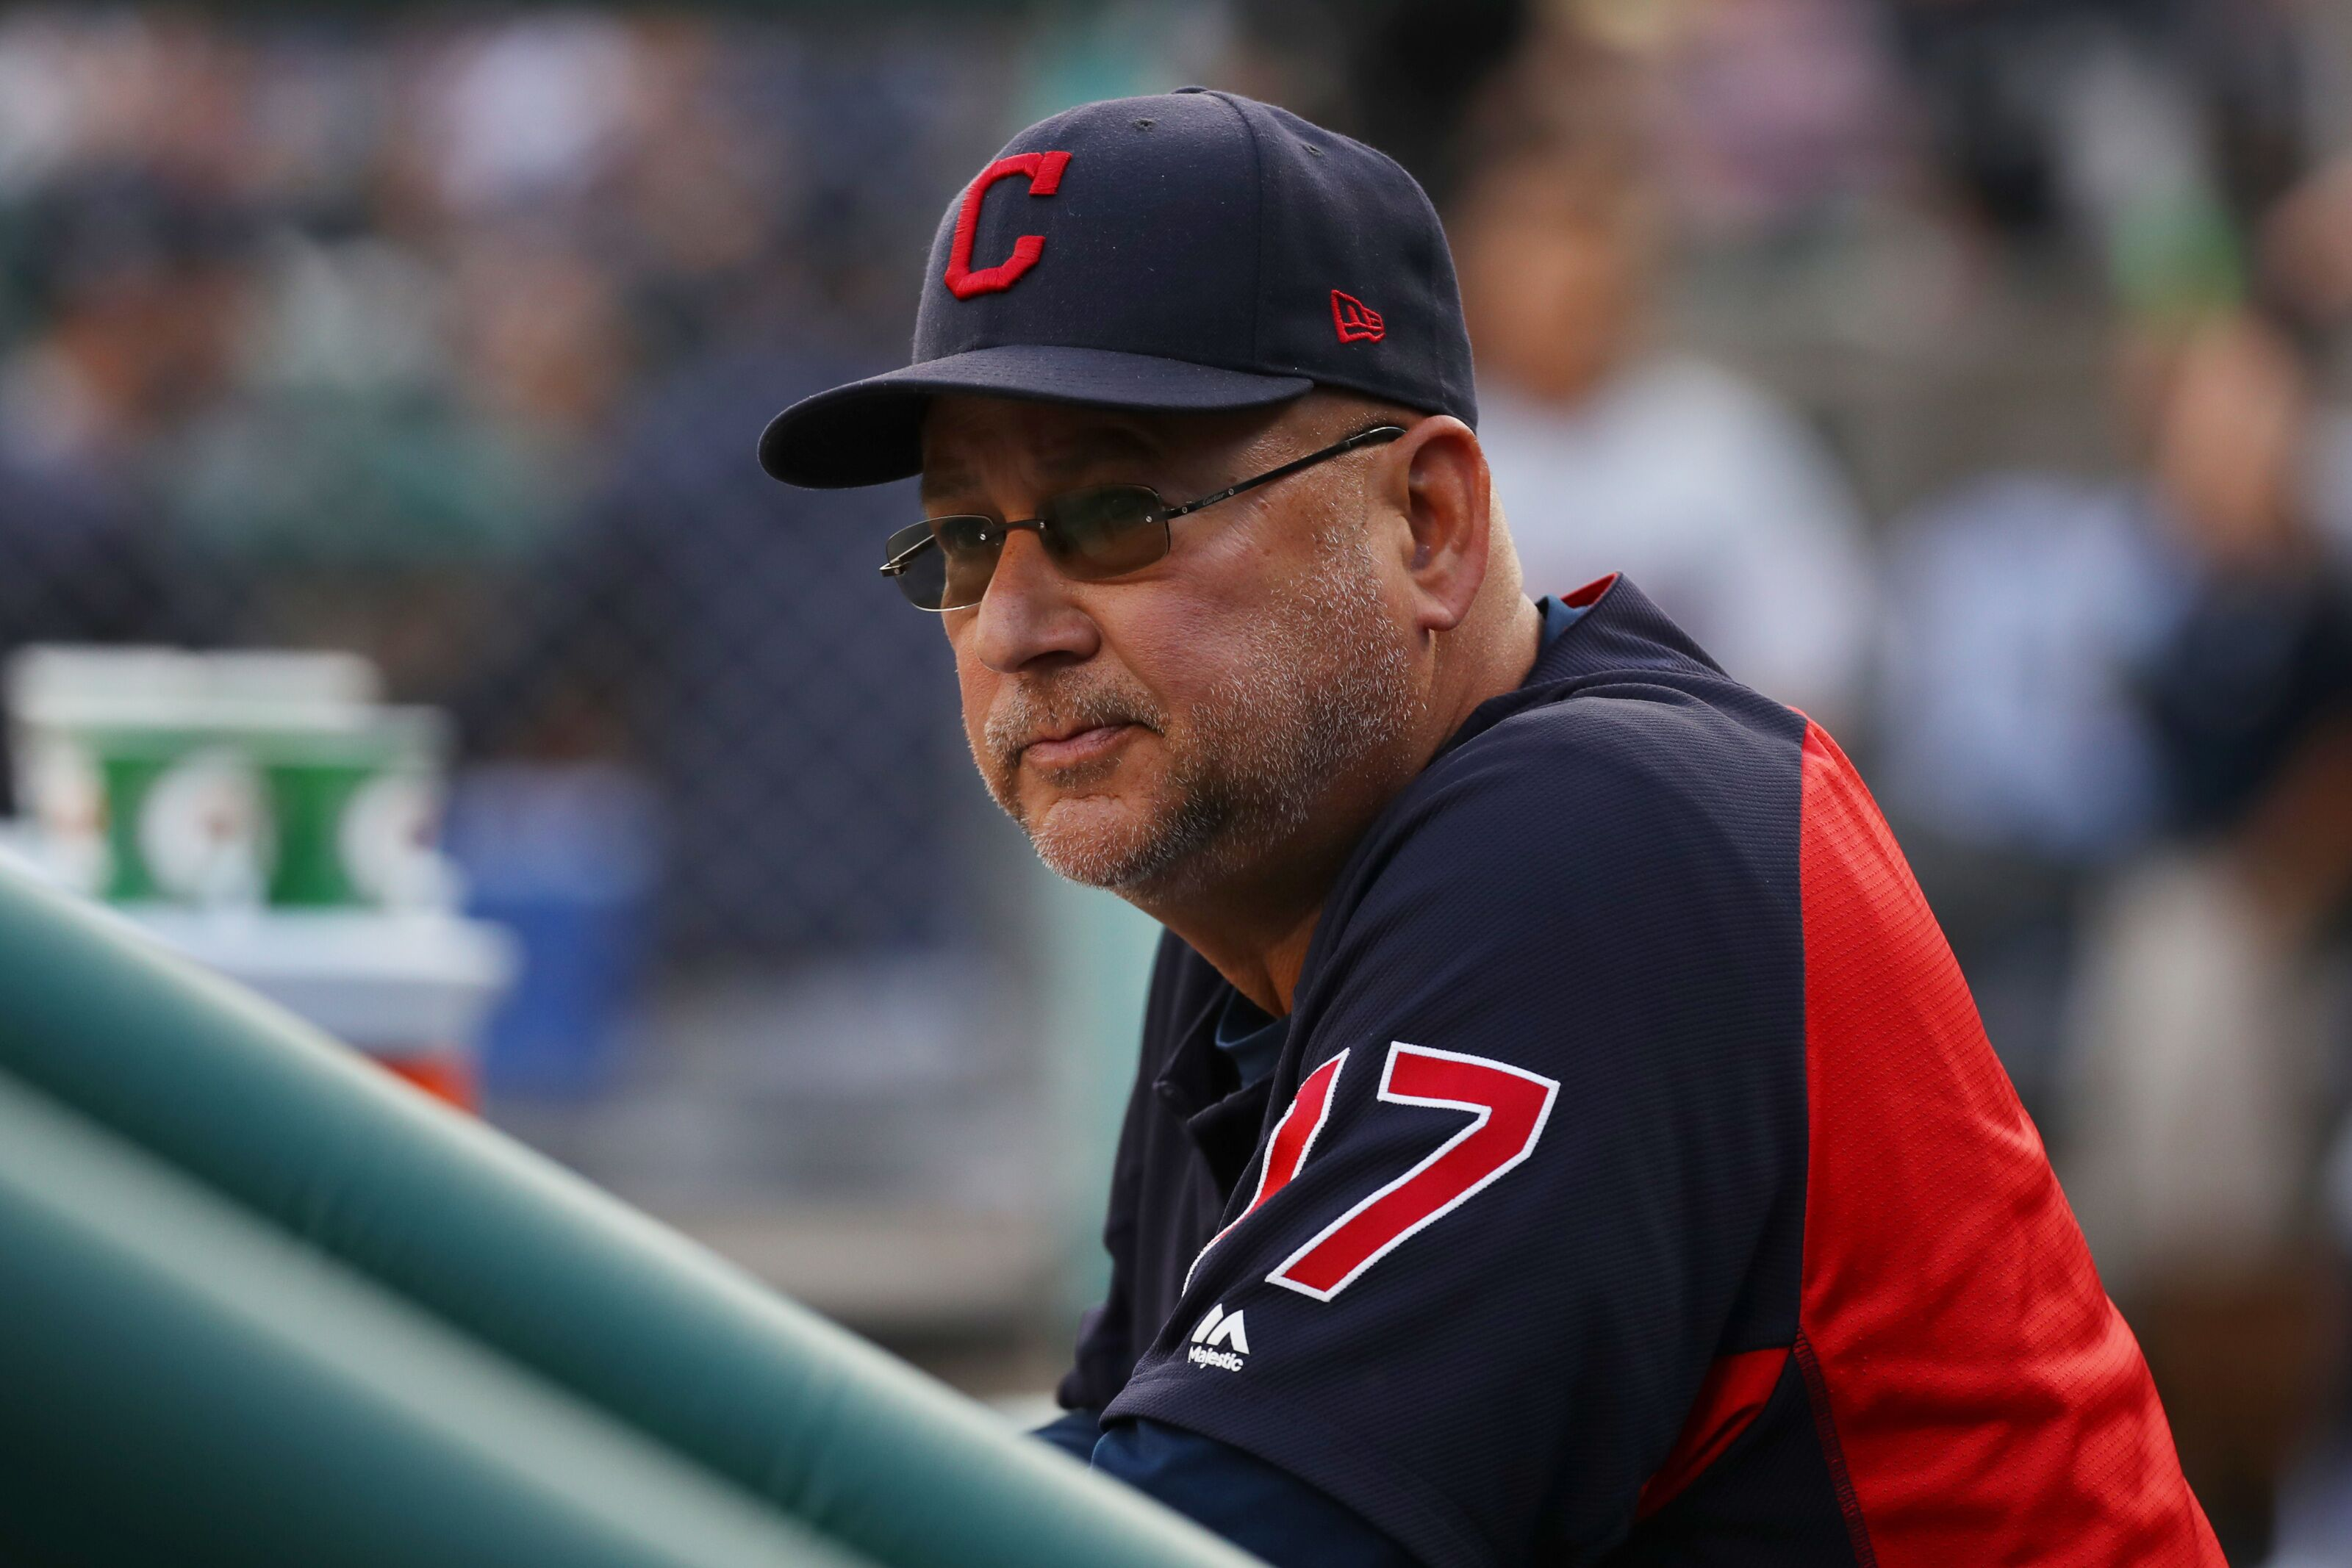 Terry Francona and the drama-free culture of the Cleveland Indians